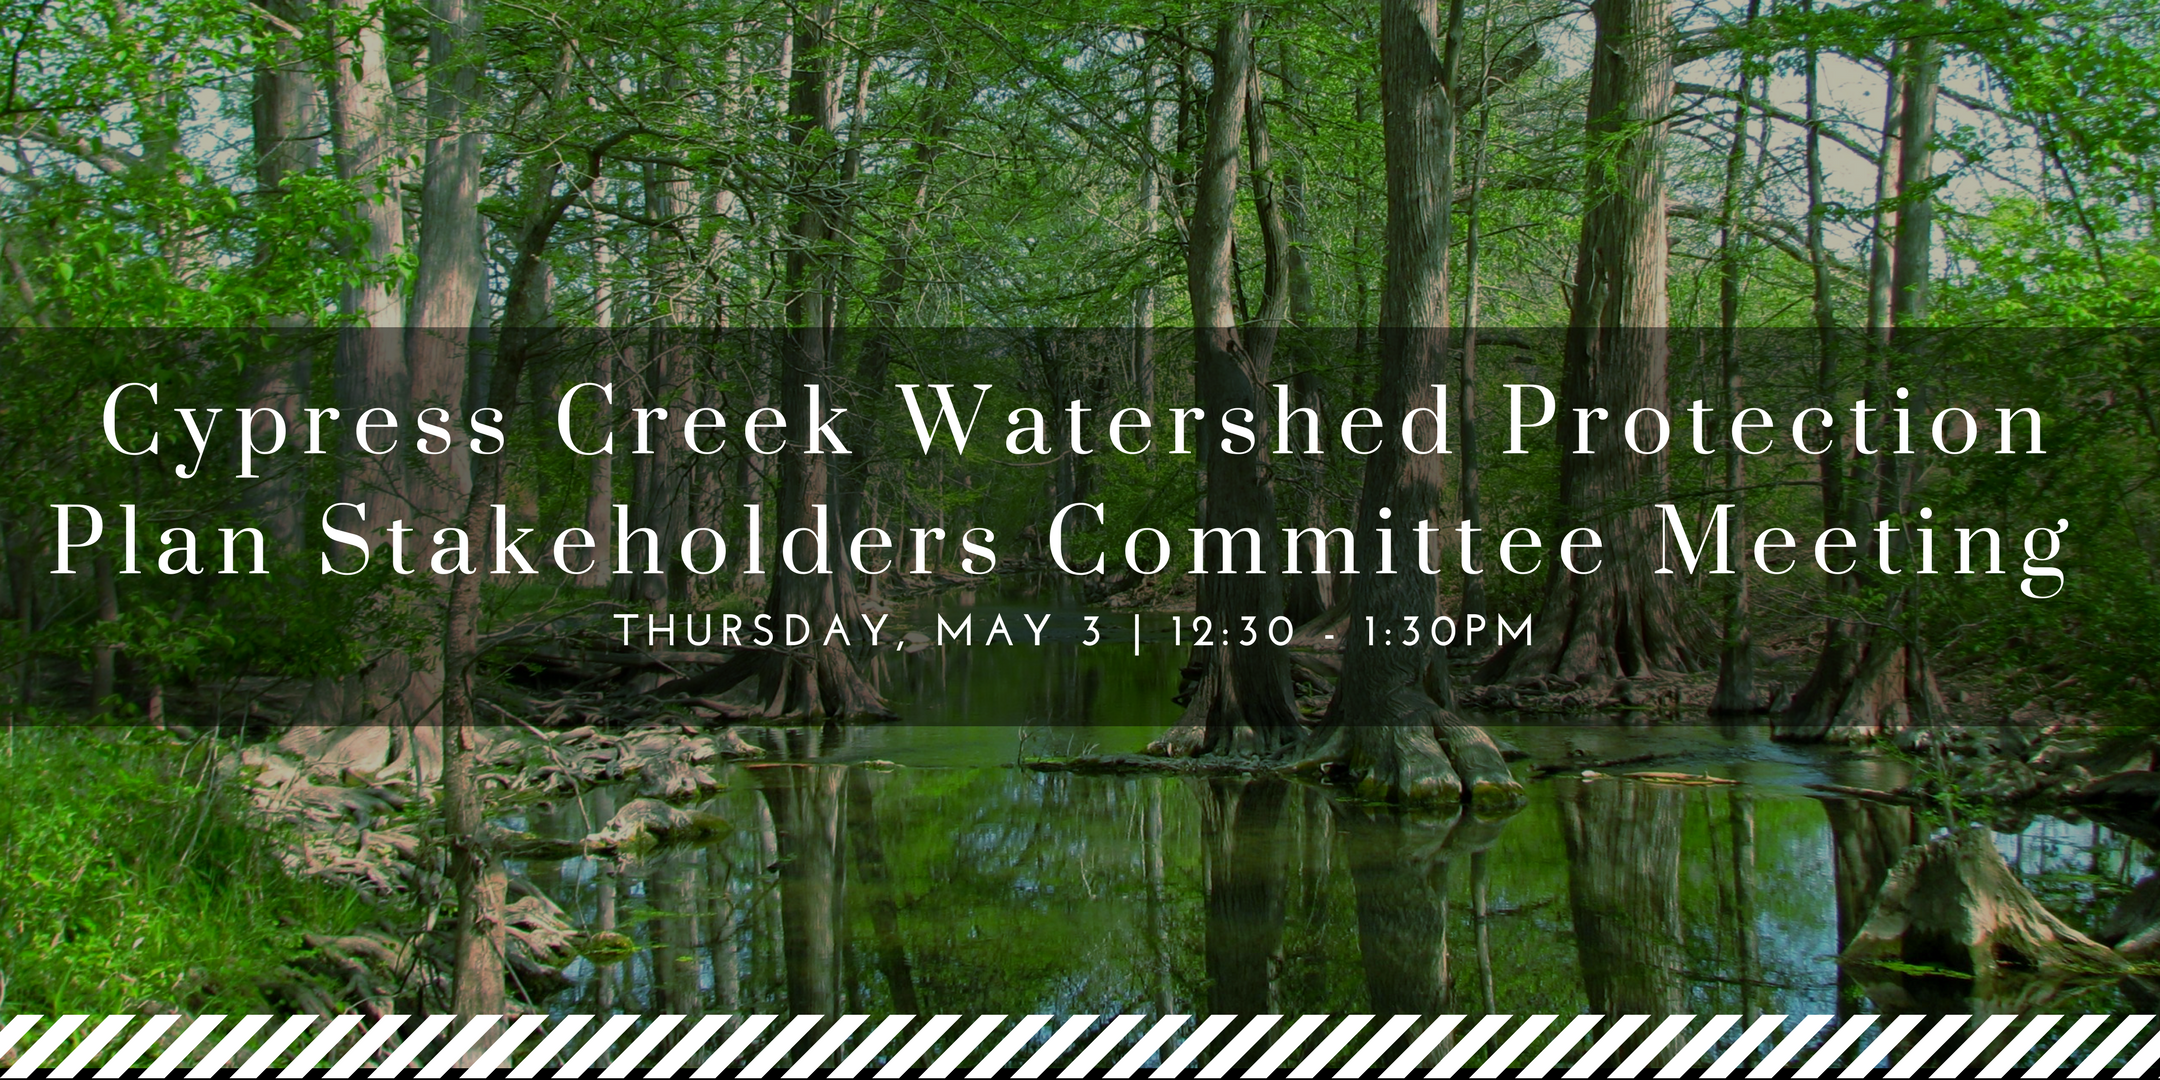 Cypress Creek Watershed Protection Plan Stakeholders Committee Meeting.png